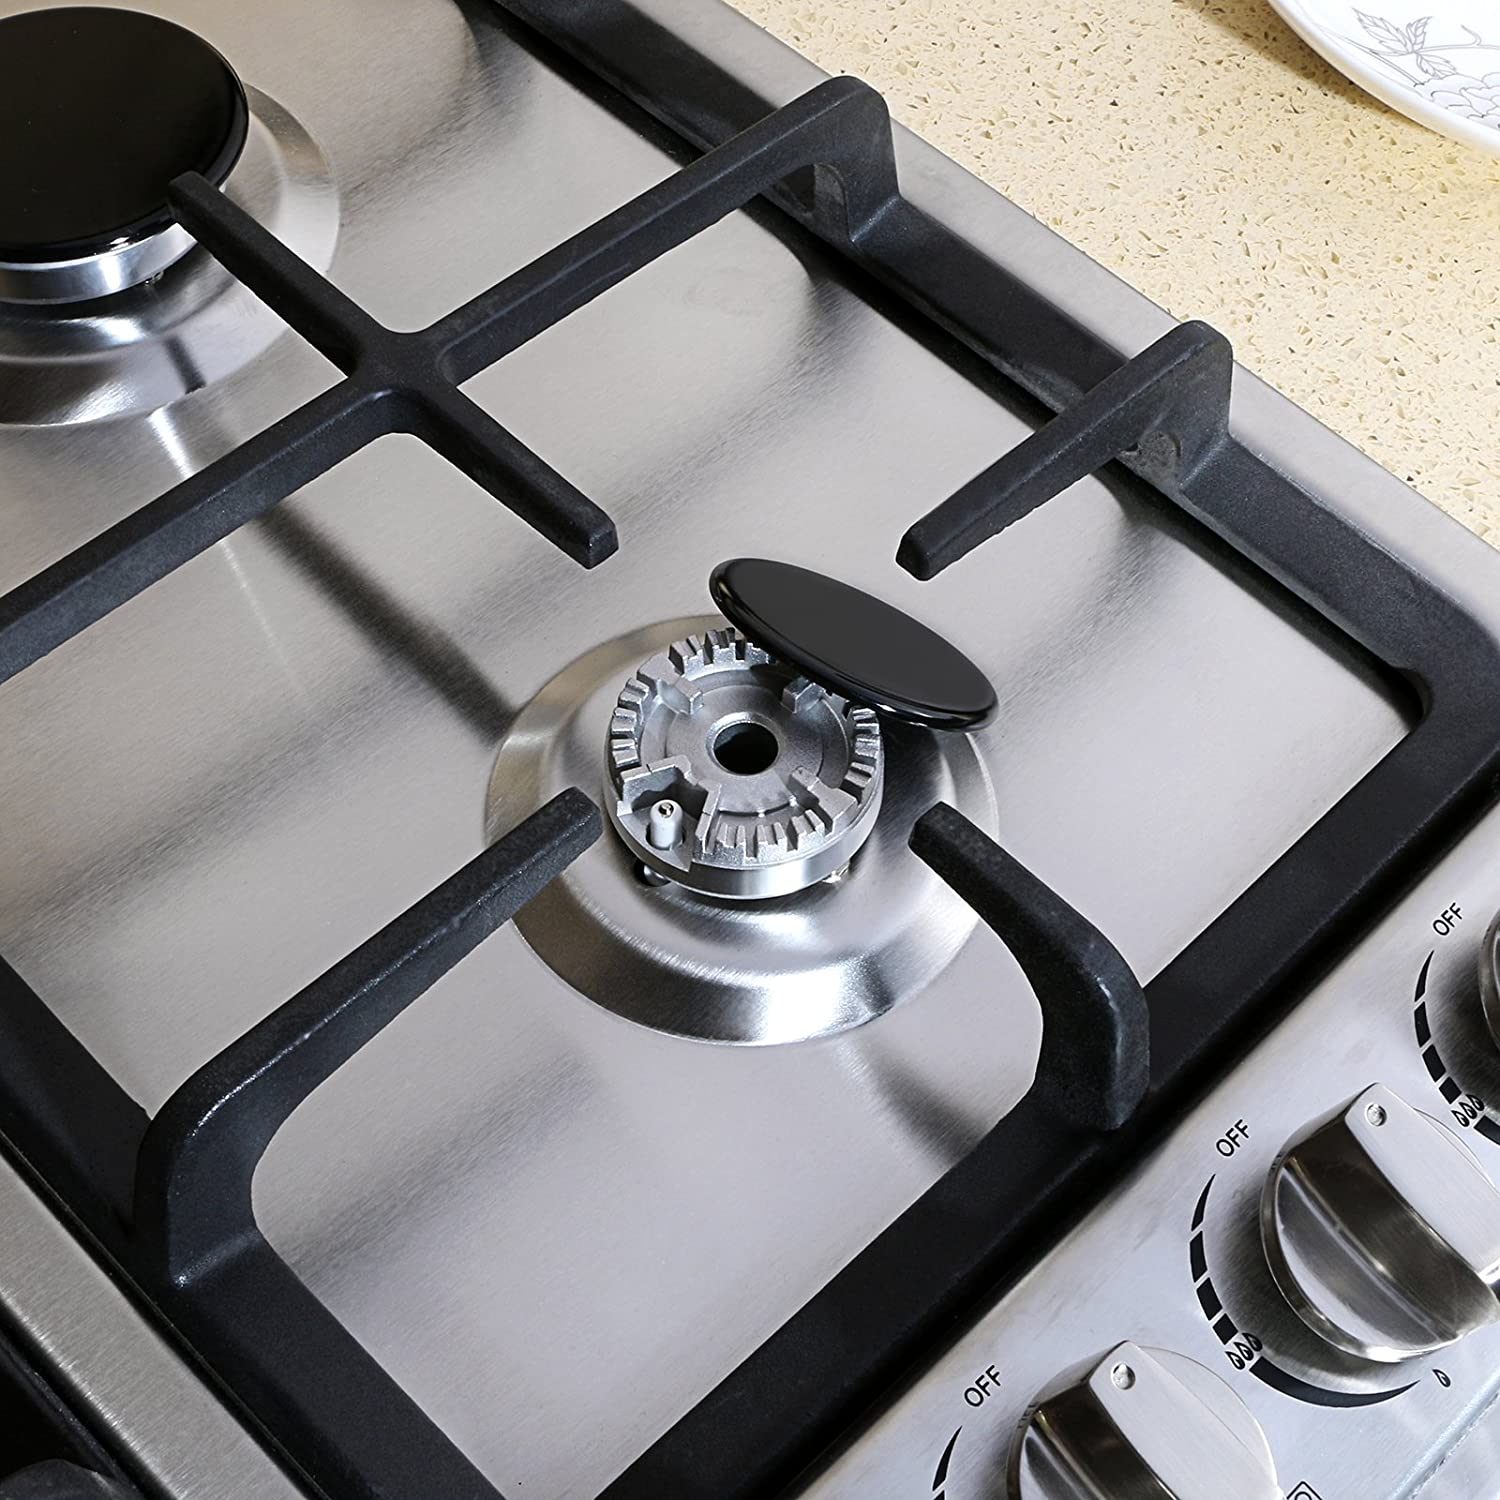 METAWELL 23 Stainless Steel 4 Burners Stove Natural Gas Hob Cooktops 11259Btu 3300W Cooker Ship from CA,US